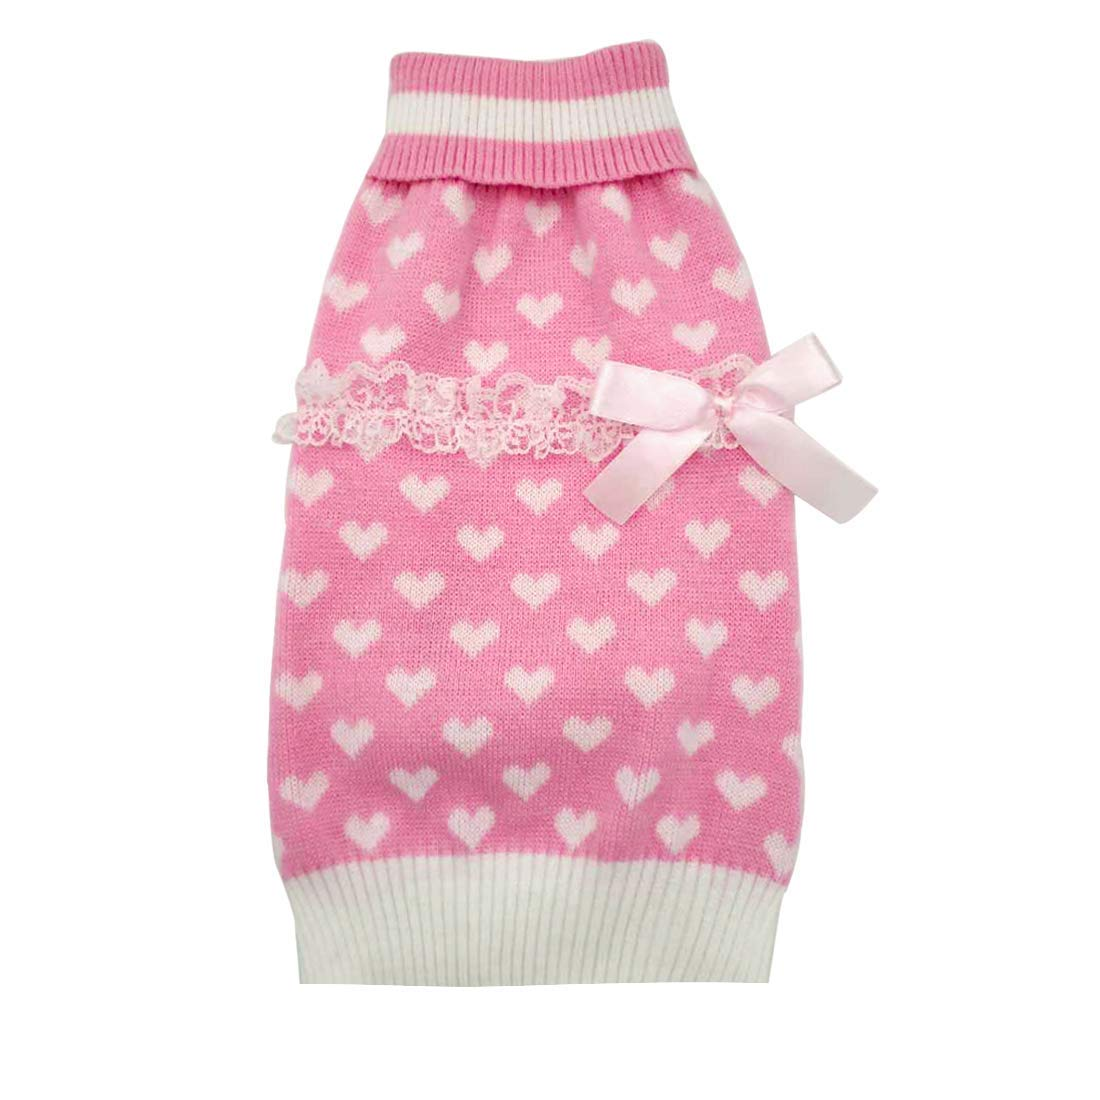 Cheap Dog Sock Sweater Find Dog Sock Sweater Deals On Line At